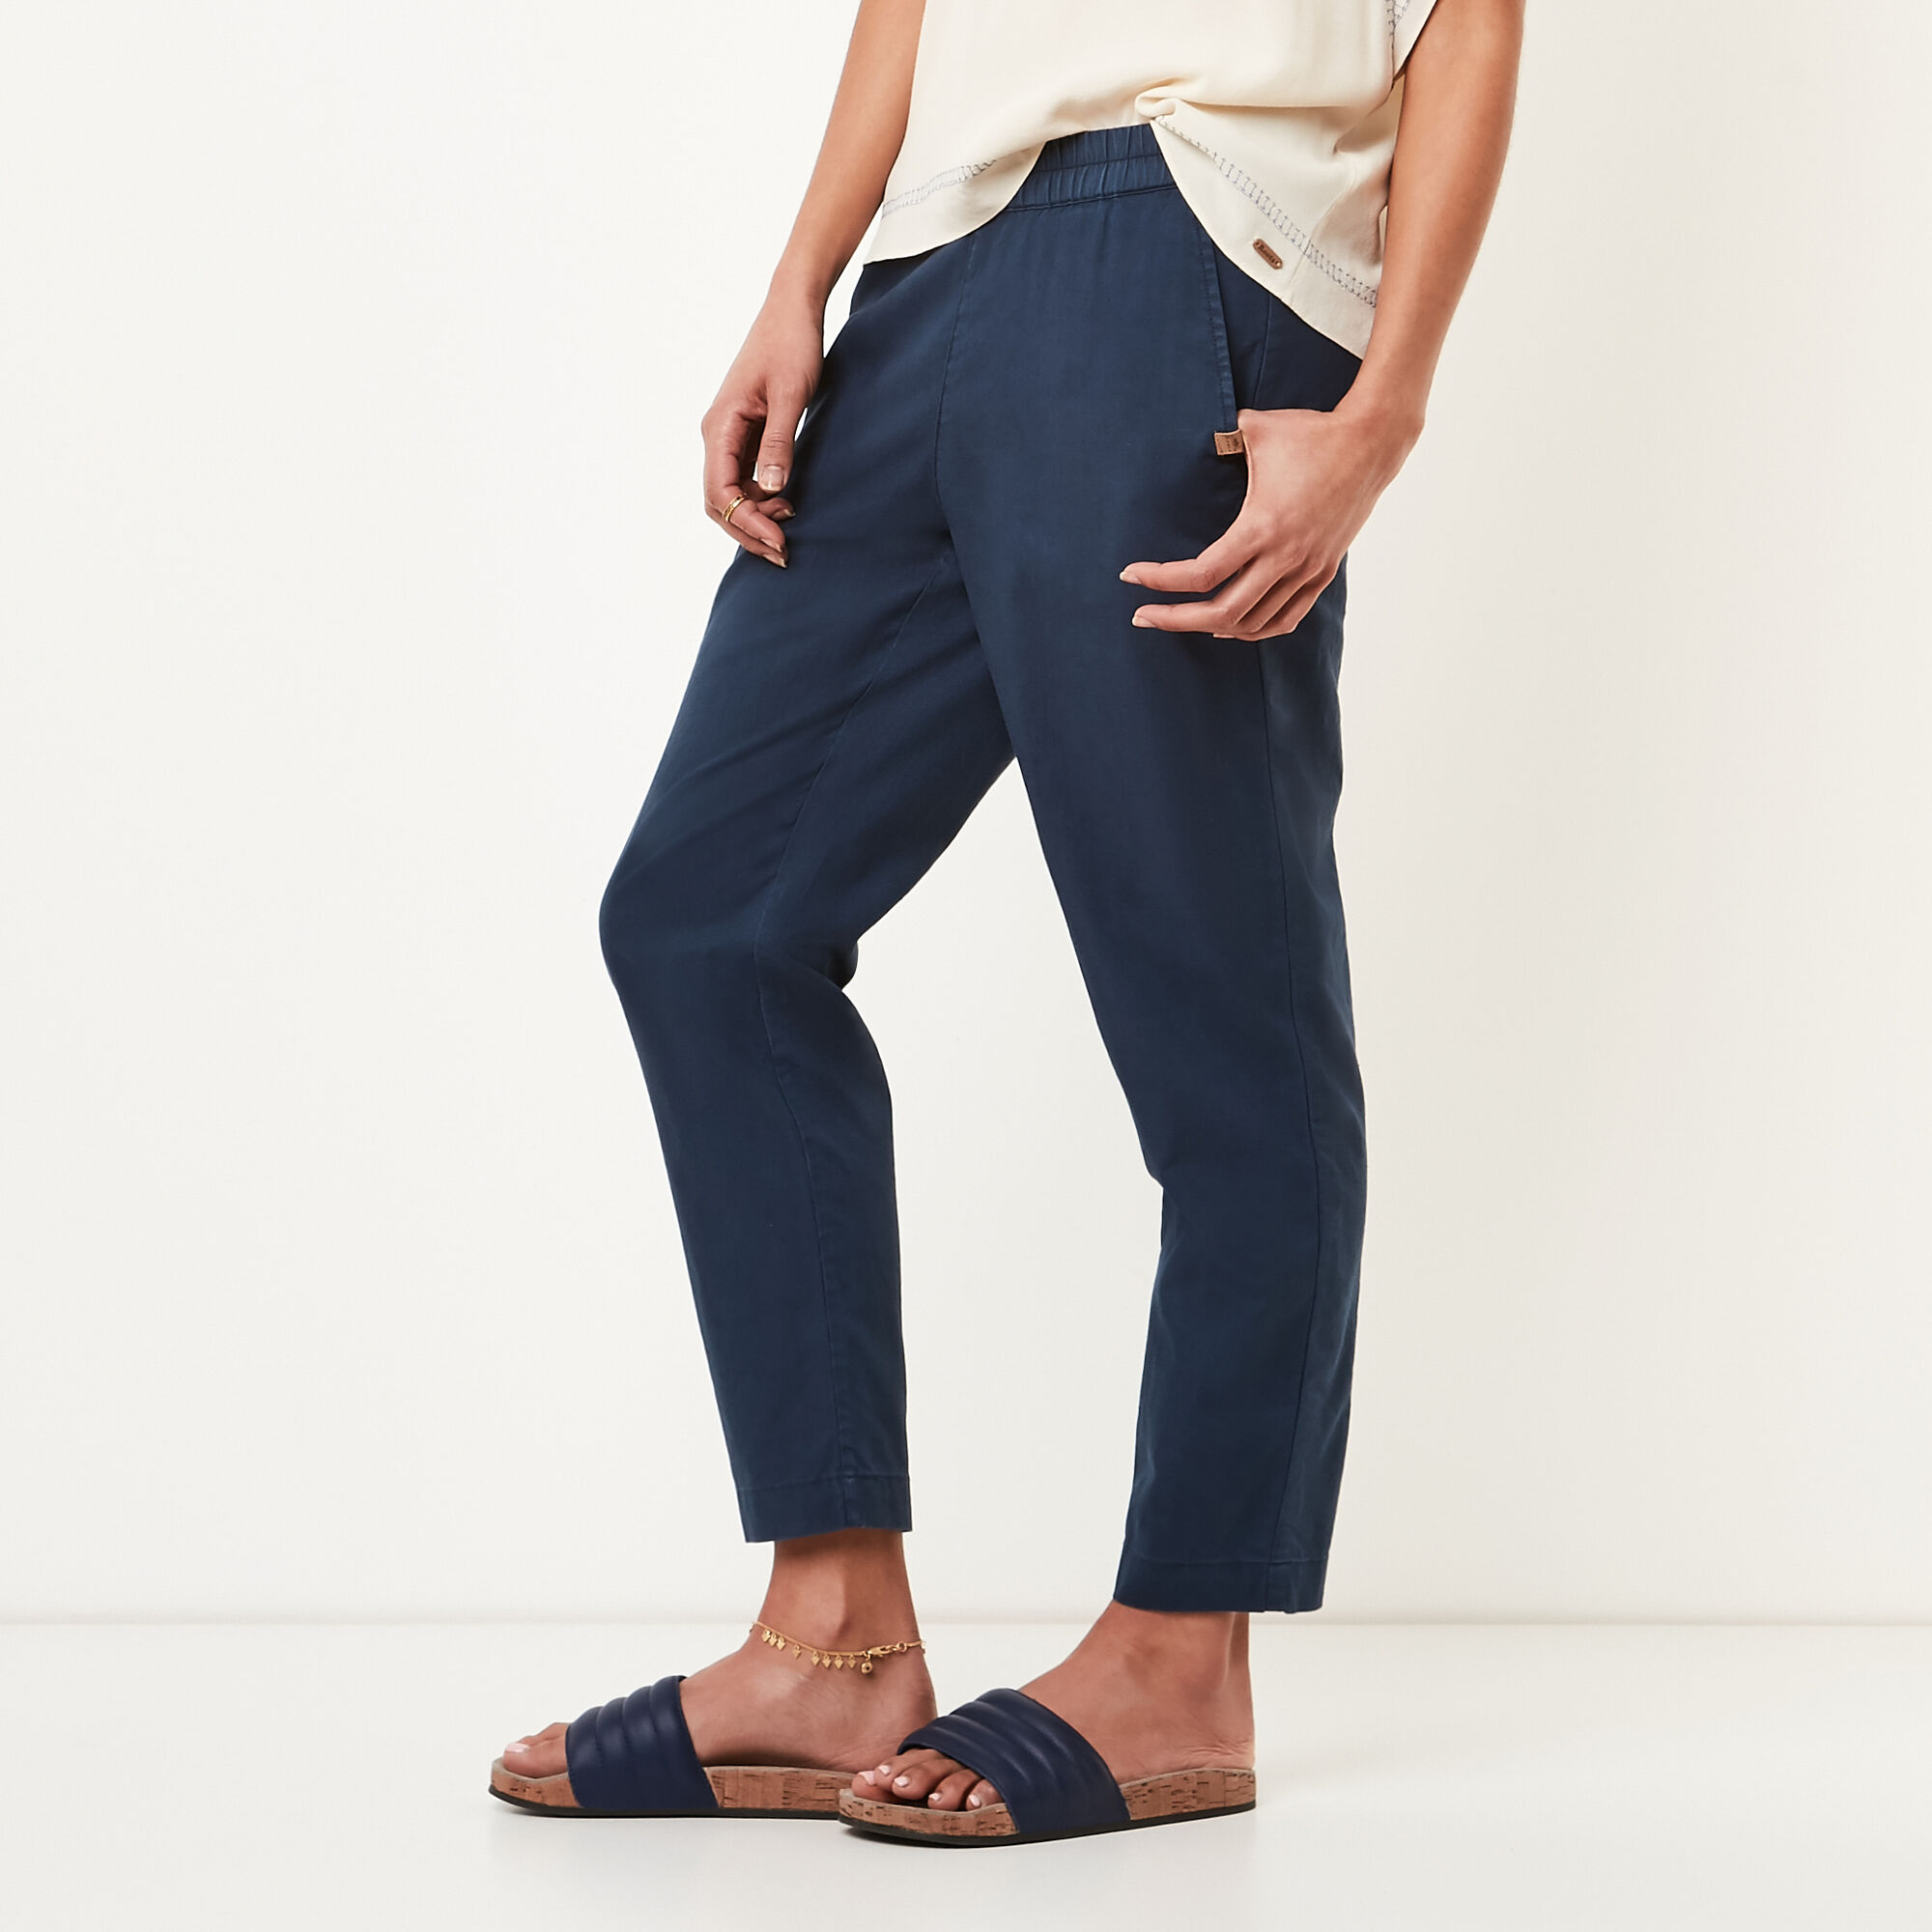 Pennywell Pant